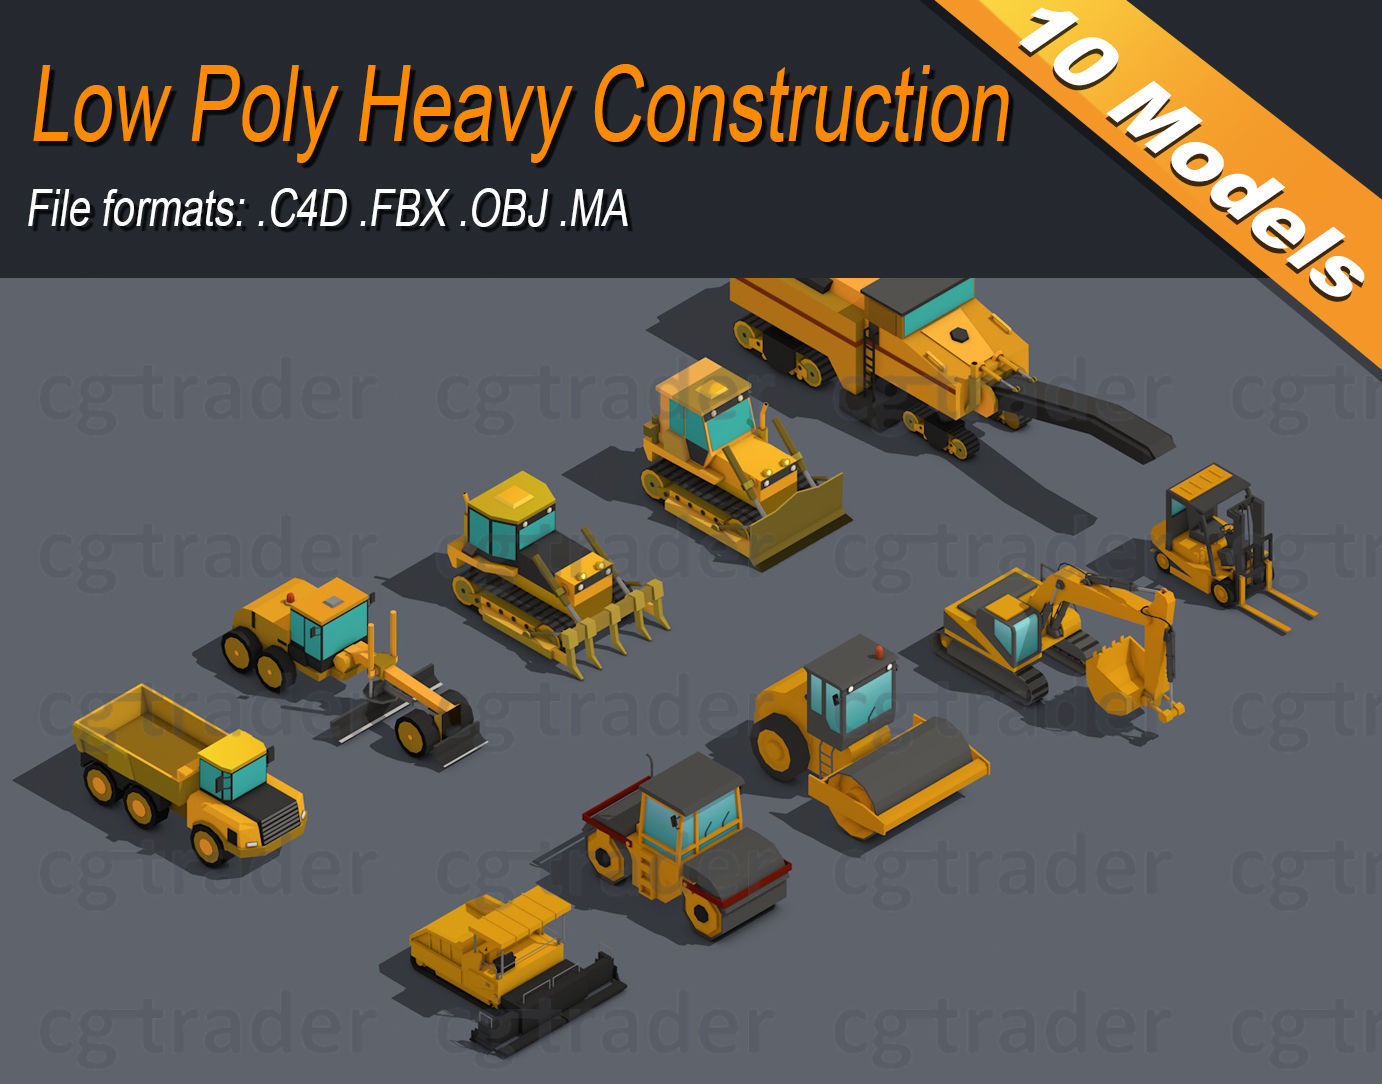 Low Poly Heavy Construction Machinery Equipment Industrial